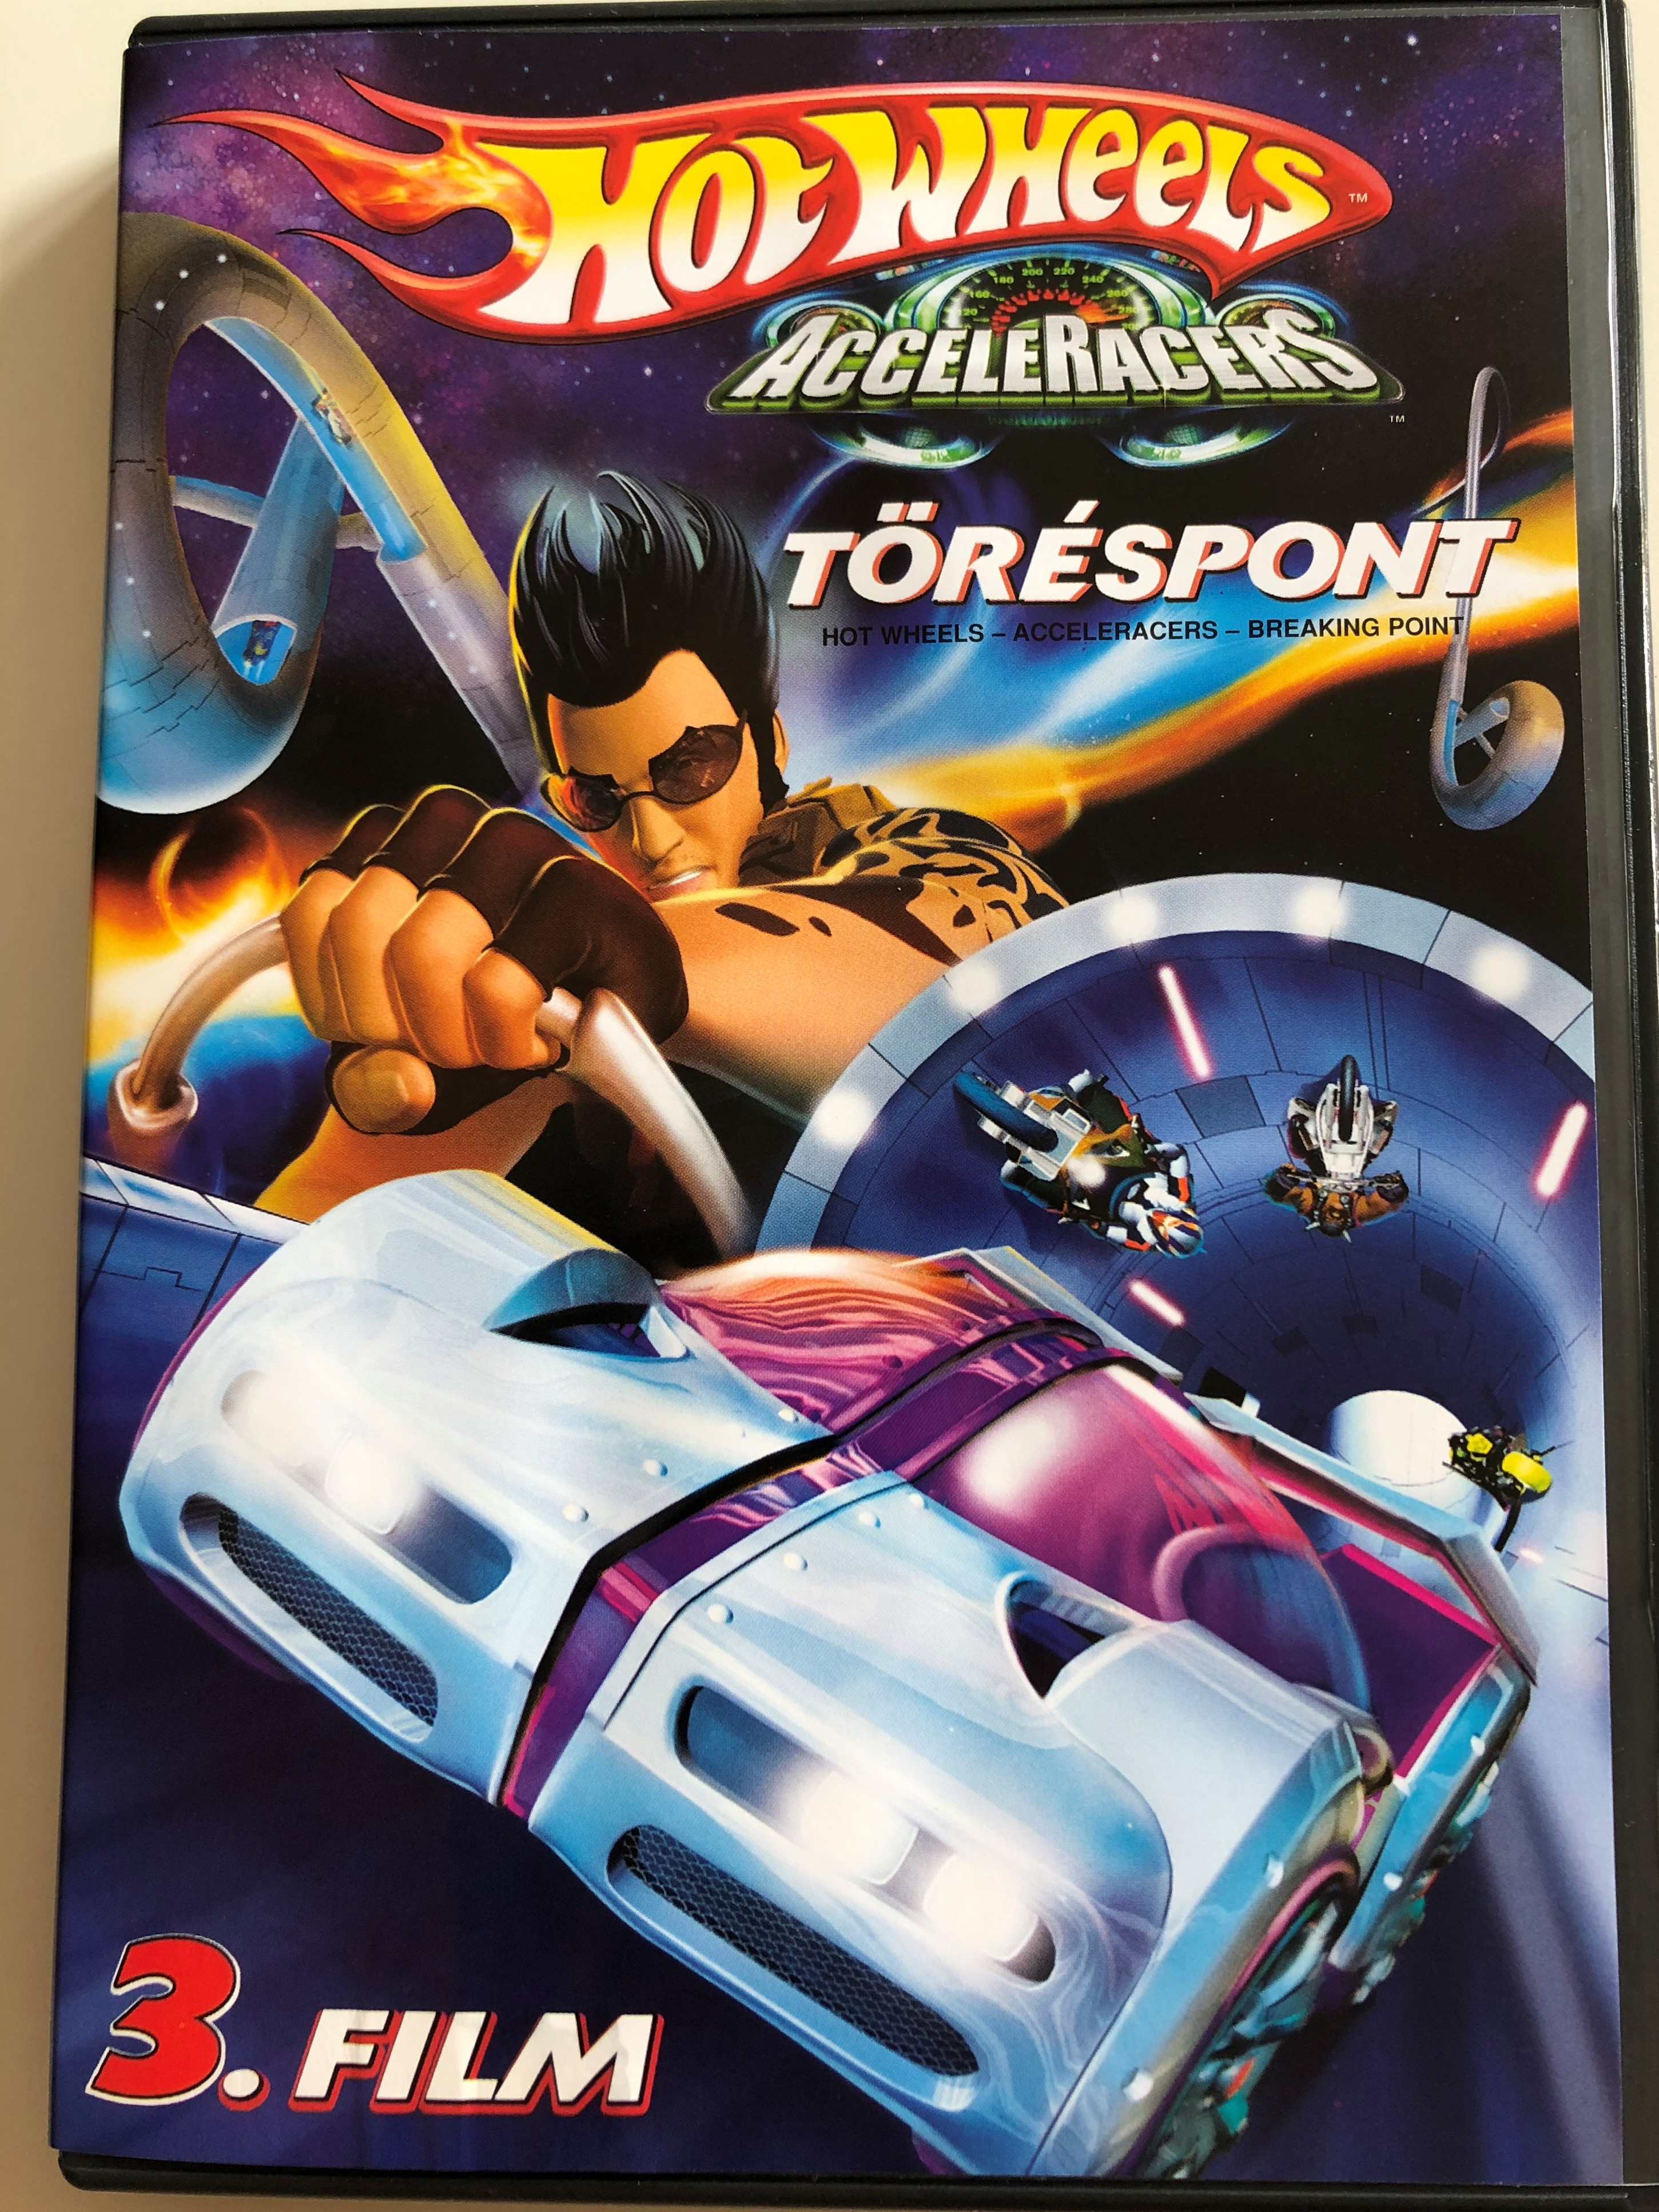 hot-wheels-acceleracers-breaking-point-dvd-2005-hot-wheels-t-r-spont-directed-by-william-lau-mattel-entertainment-3.-movie-in-series-created-by-mark-edens-ian-richter-1-.jpg